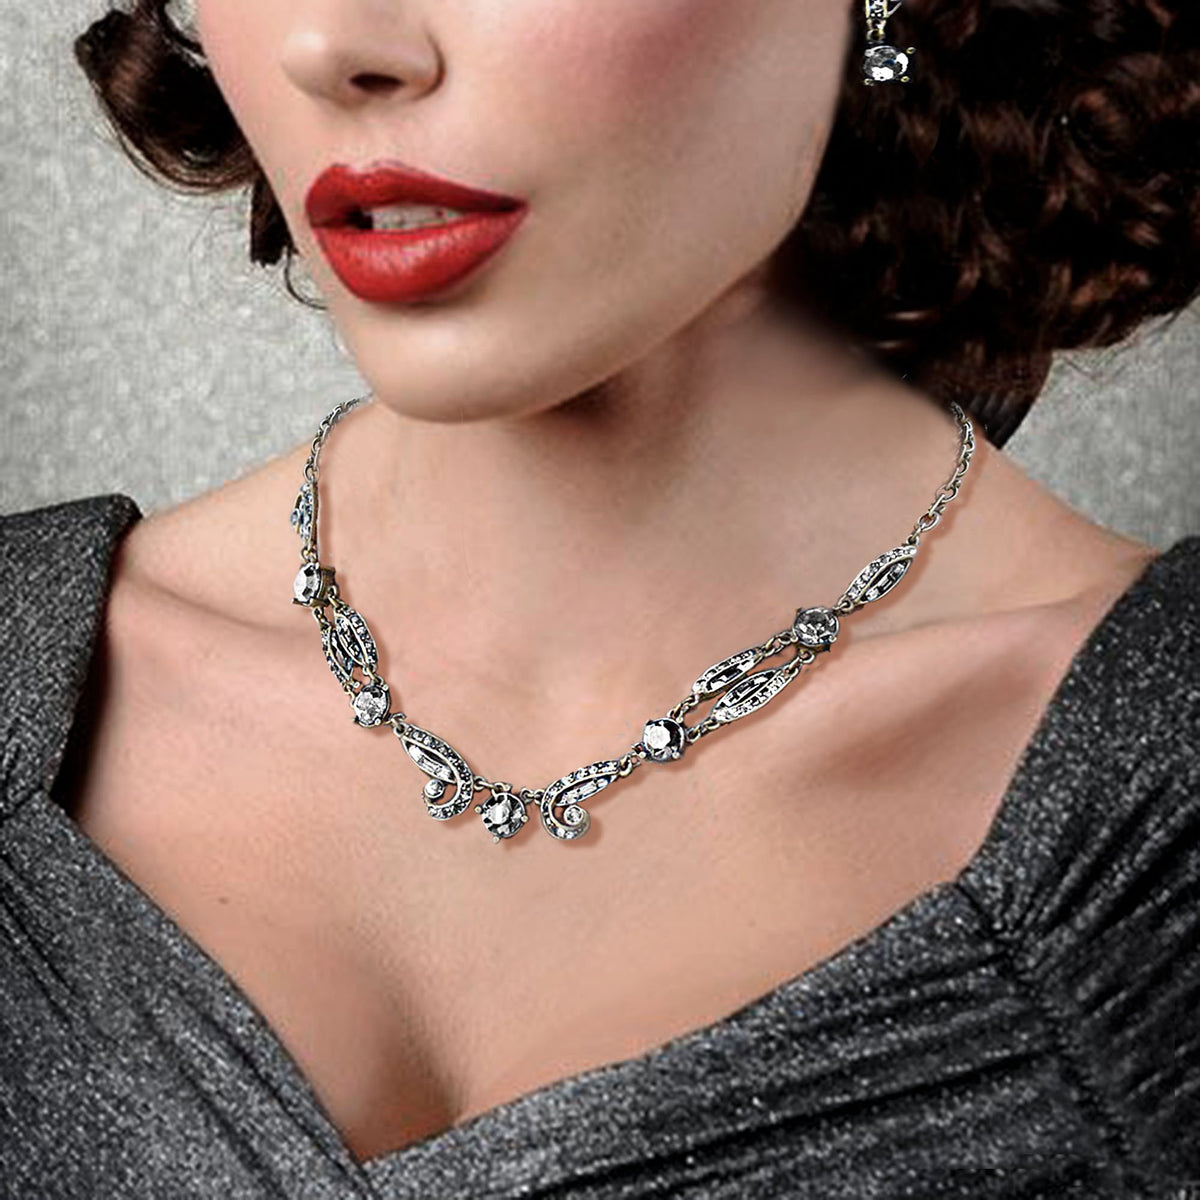 Art Deco Crystal Jewelry Set N1616 E1102 - Sweet Romance Wholesale